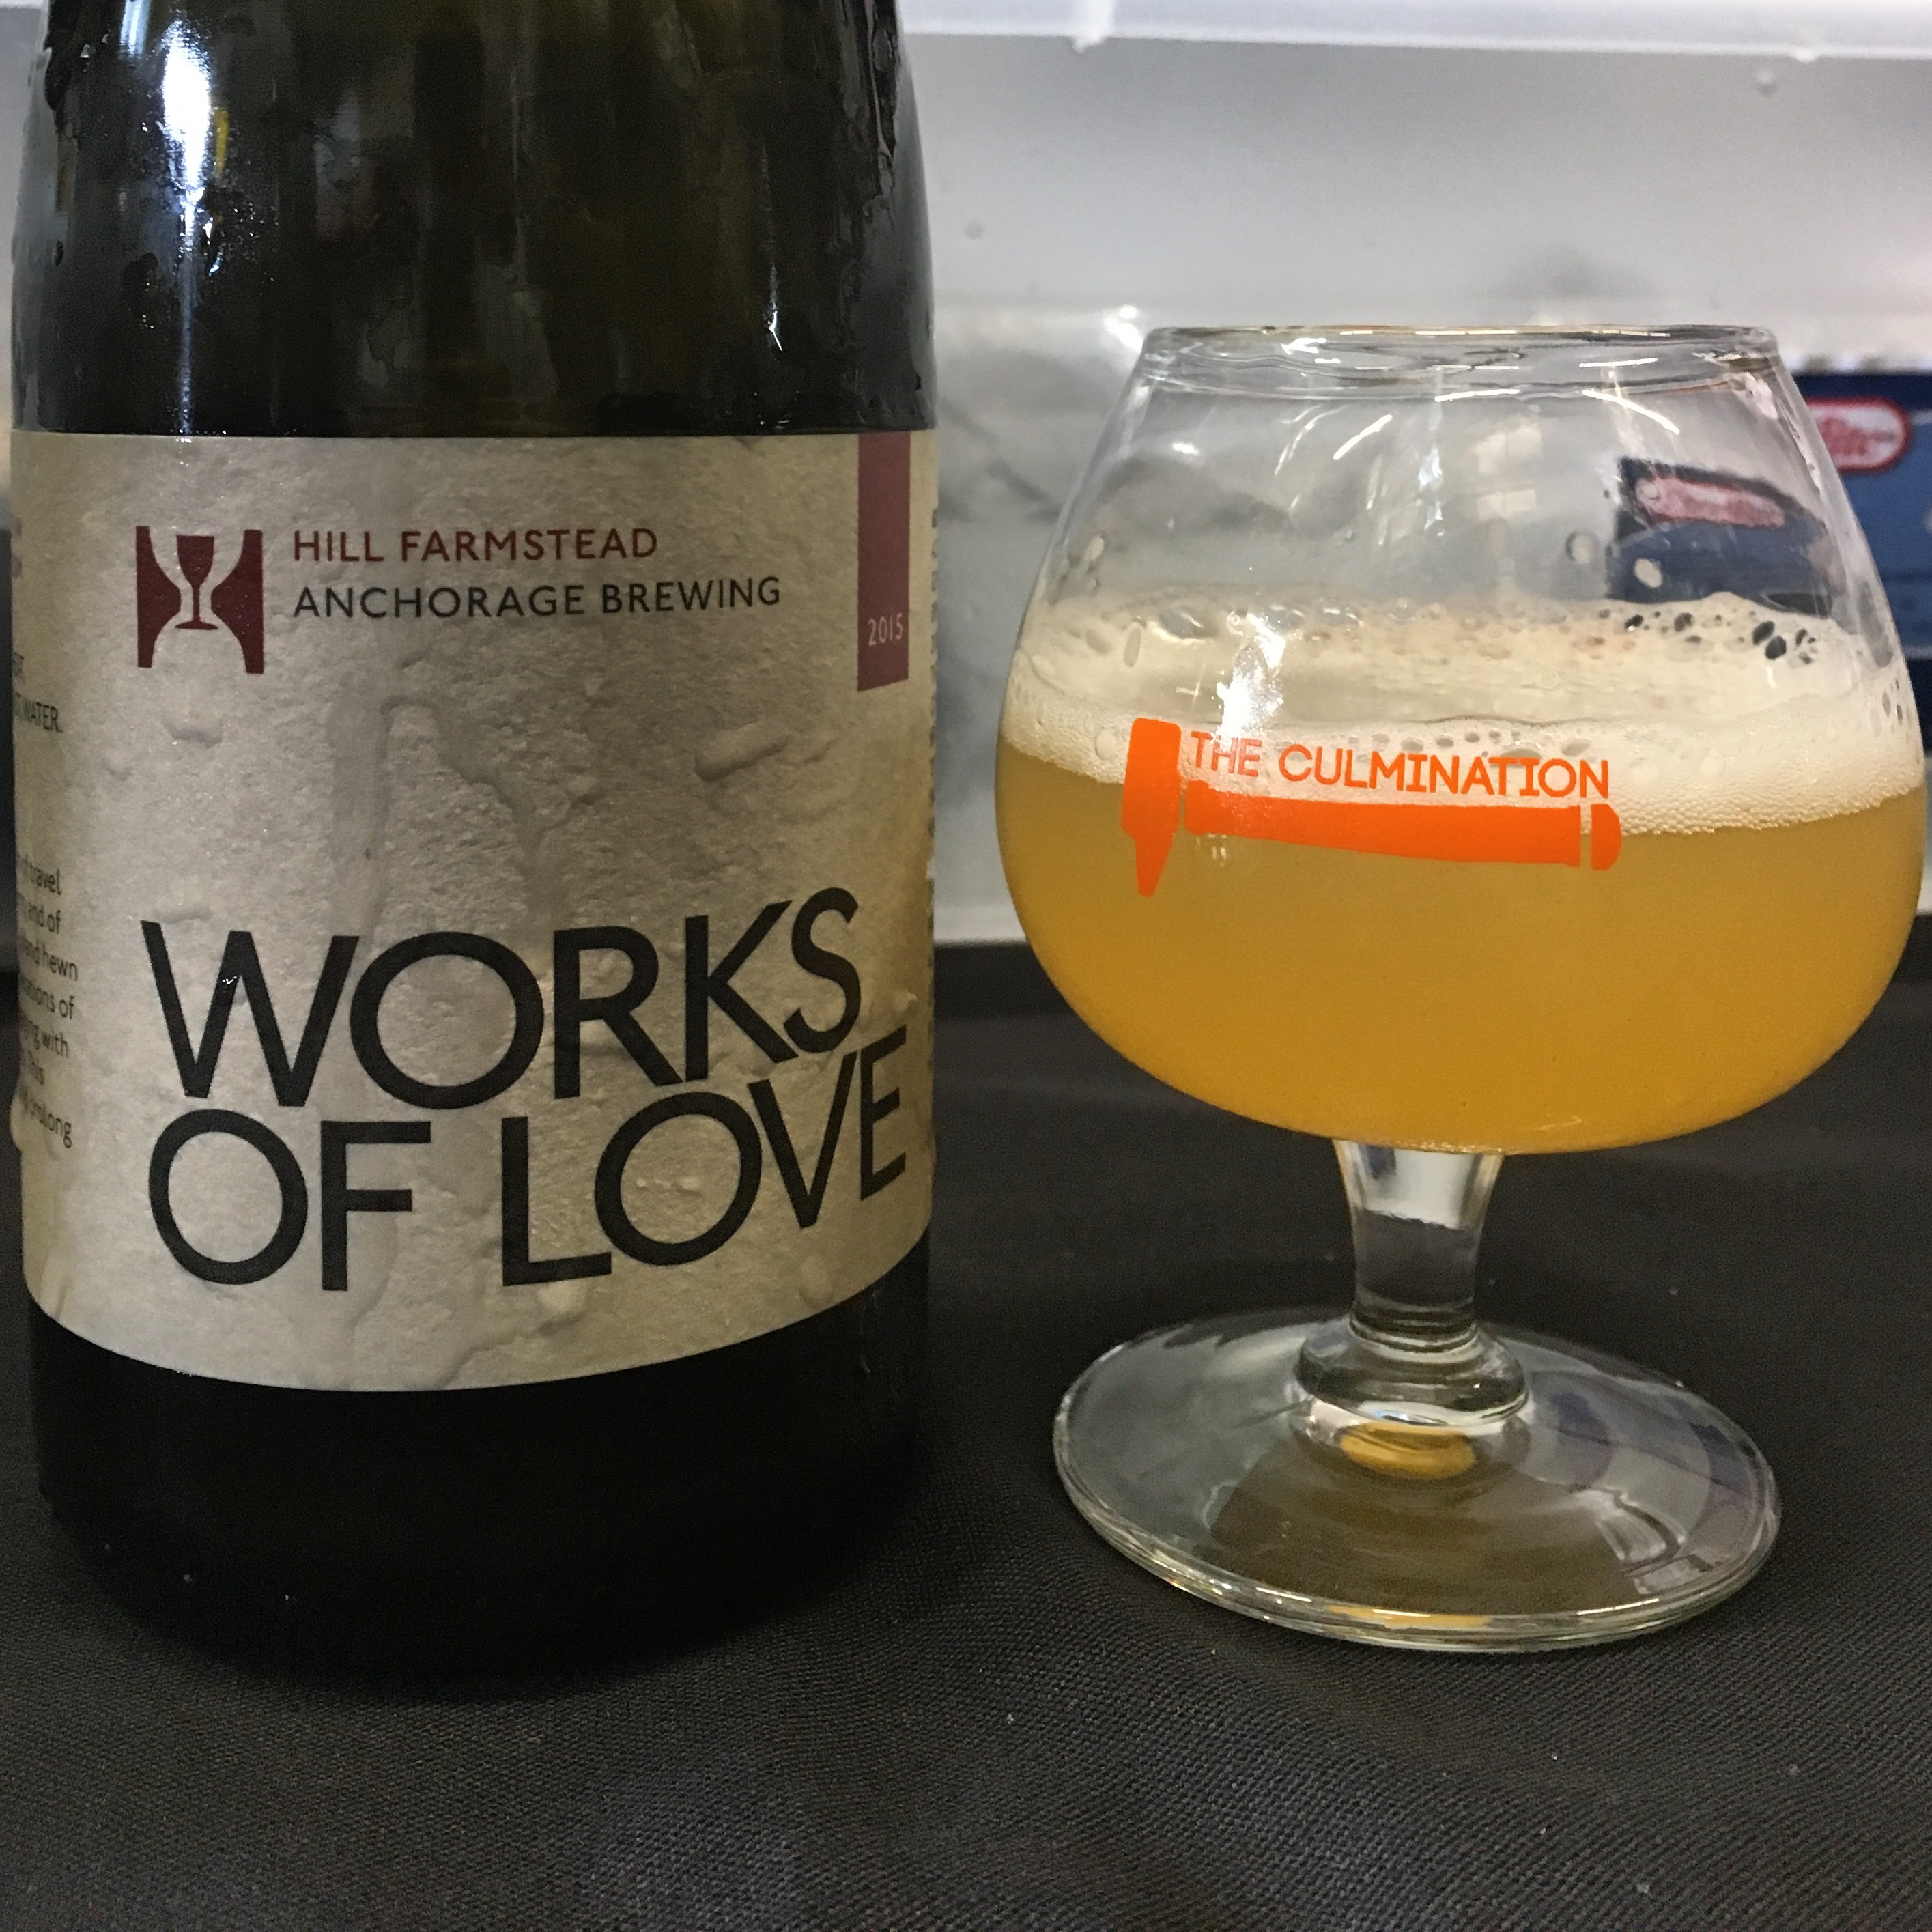 Hill Farmstead Works of Love poured at The Culmination Festival at Anchorage Brewing.